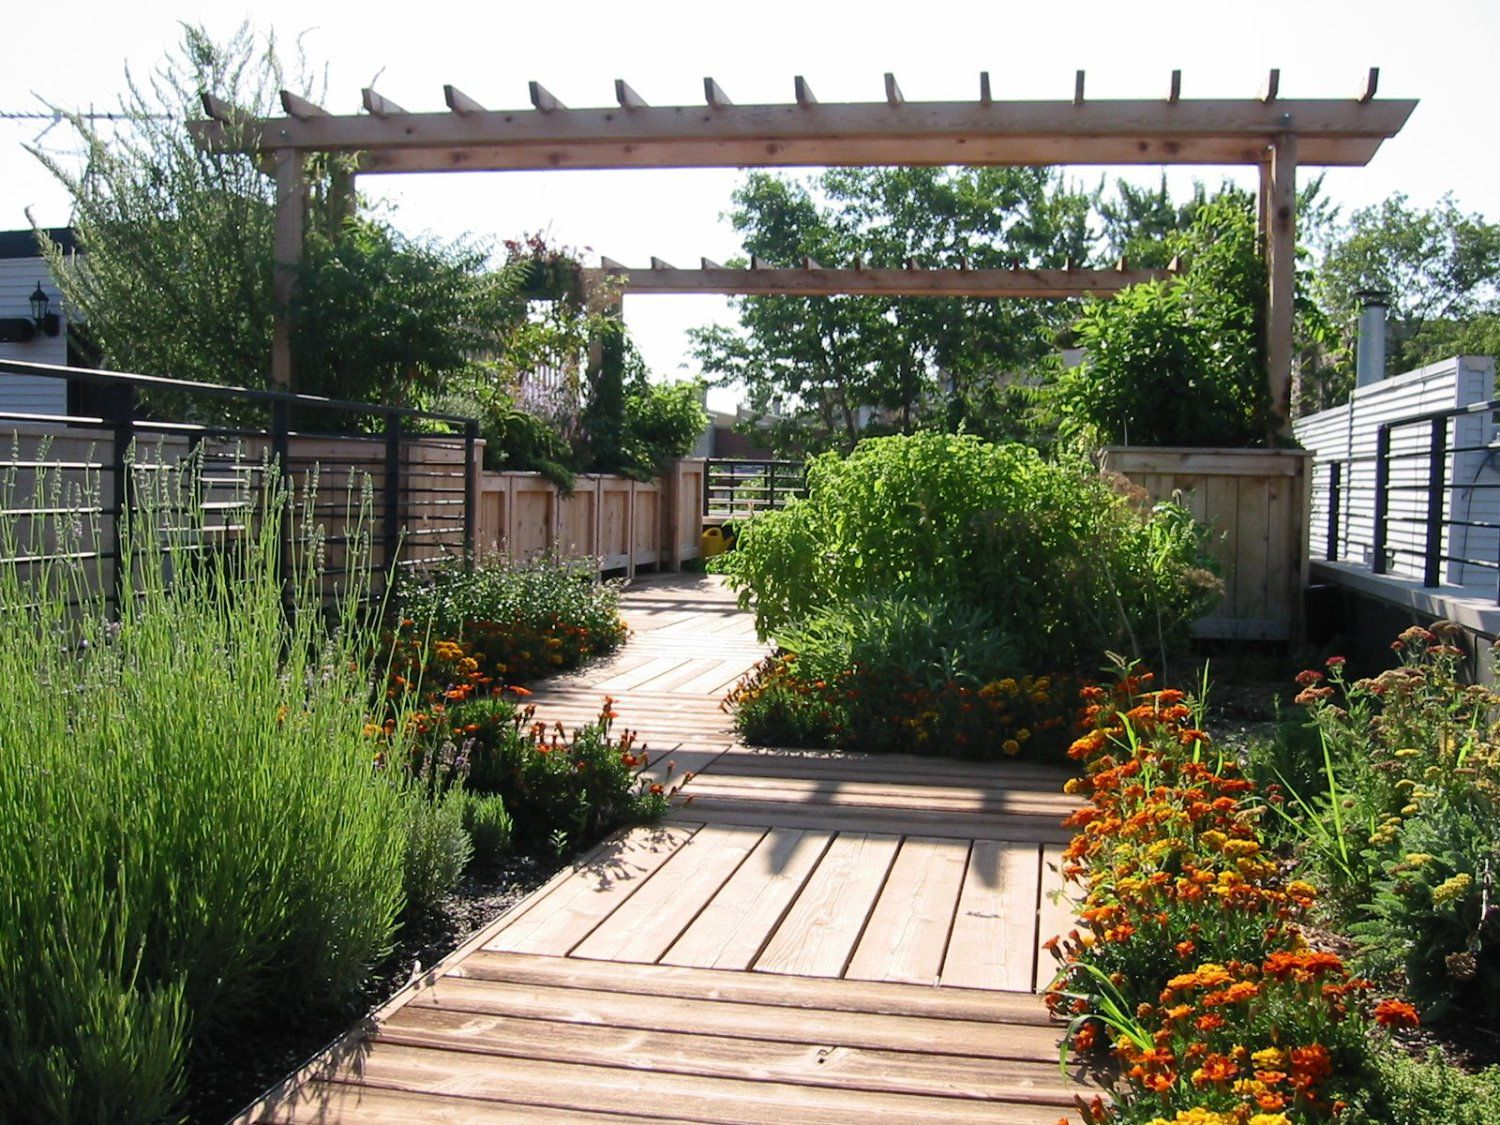 Rooftop garden john beaudry landscape design for Rooftop garden designs